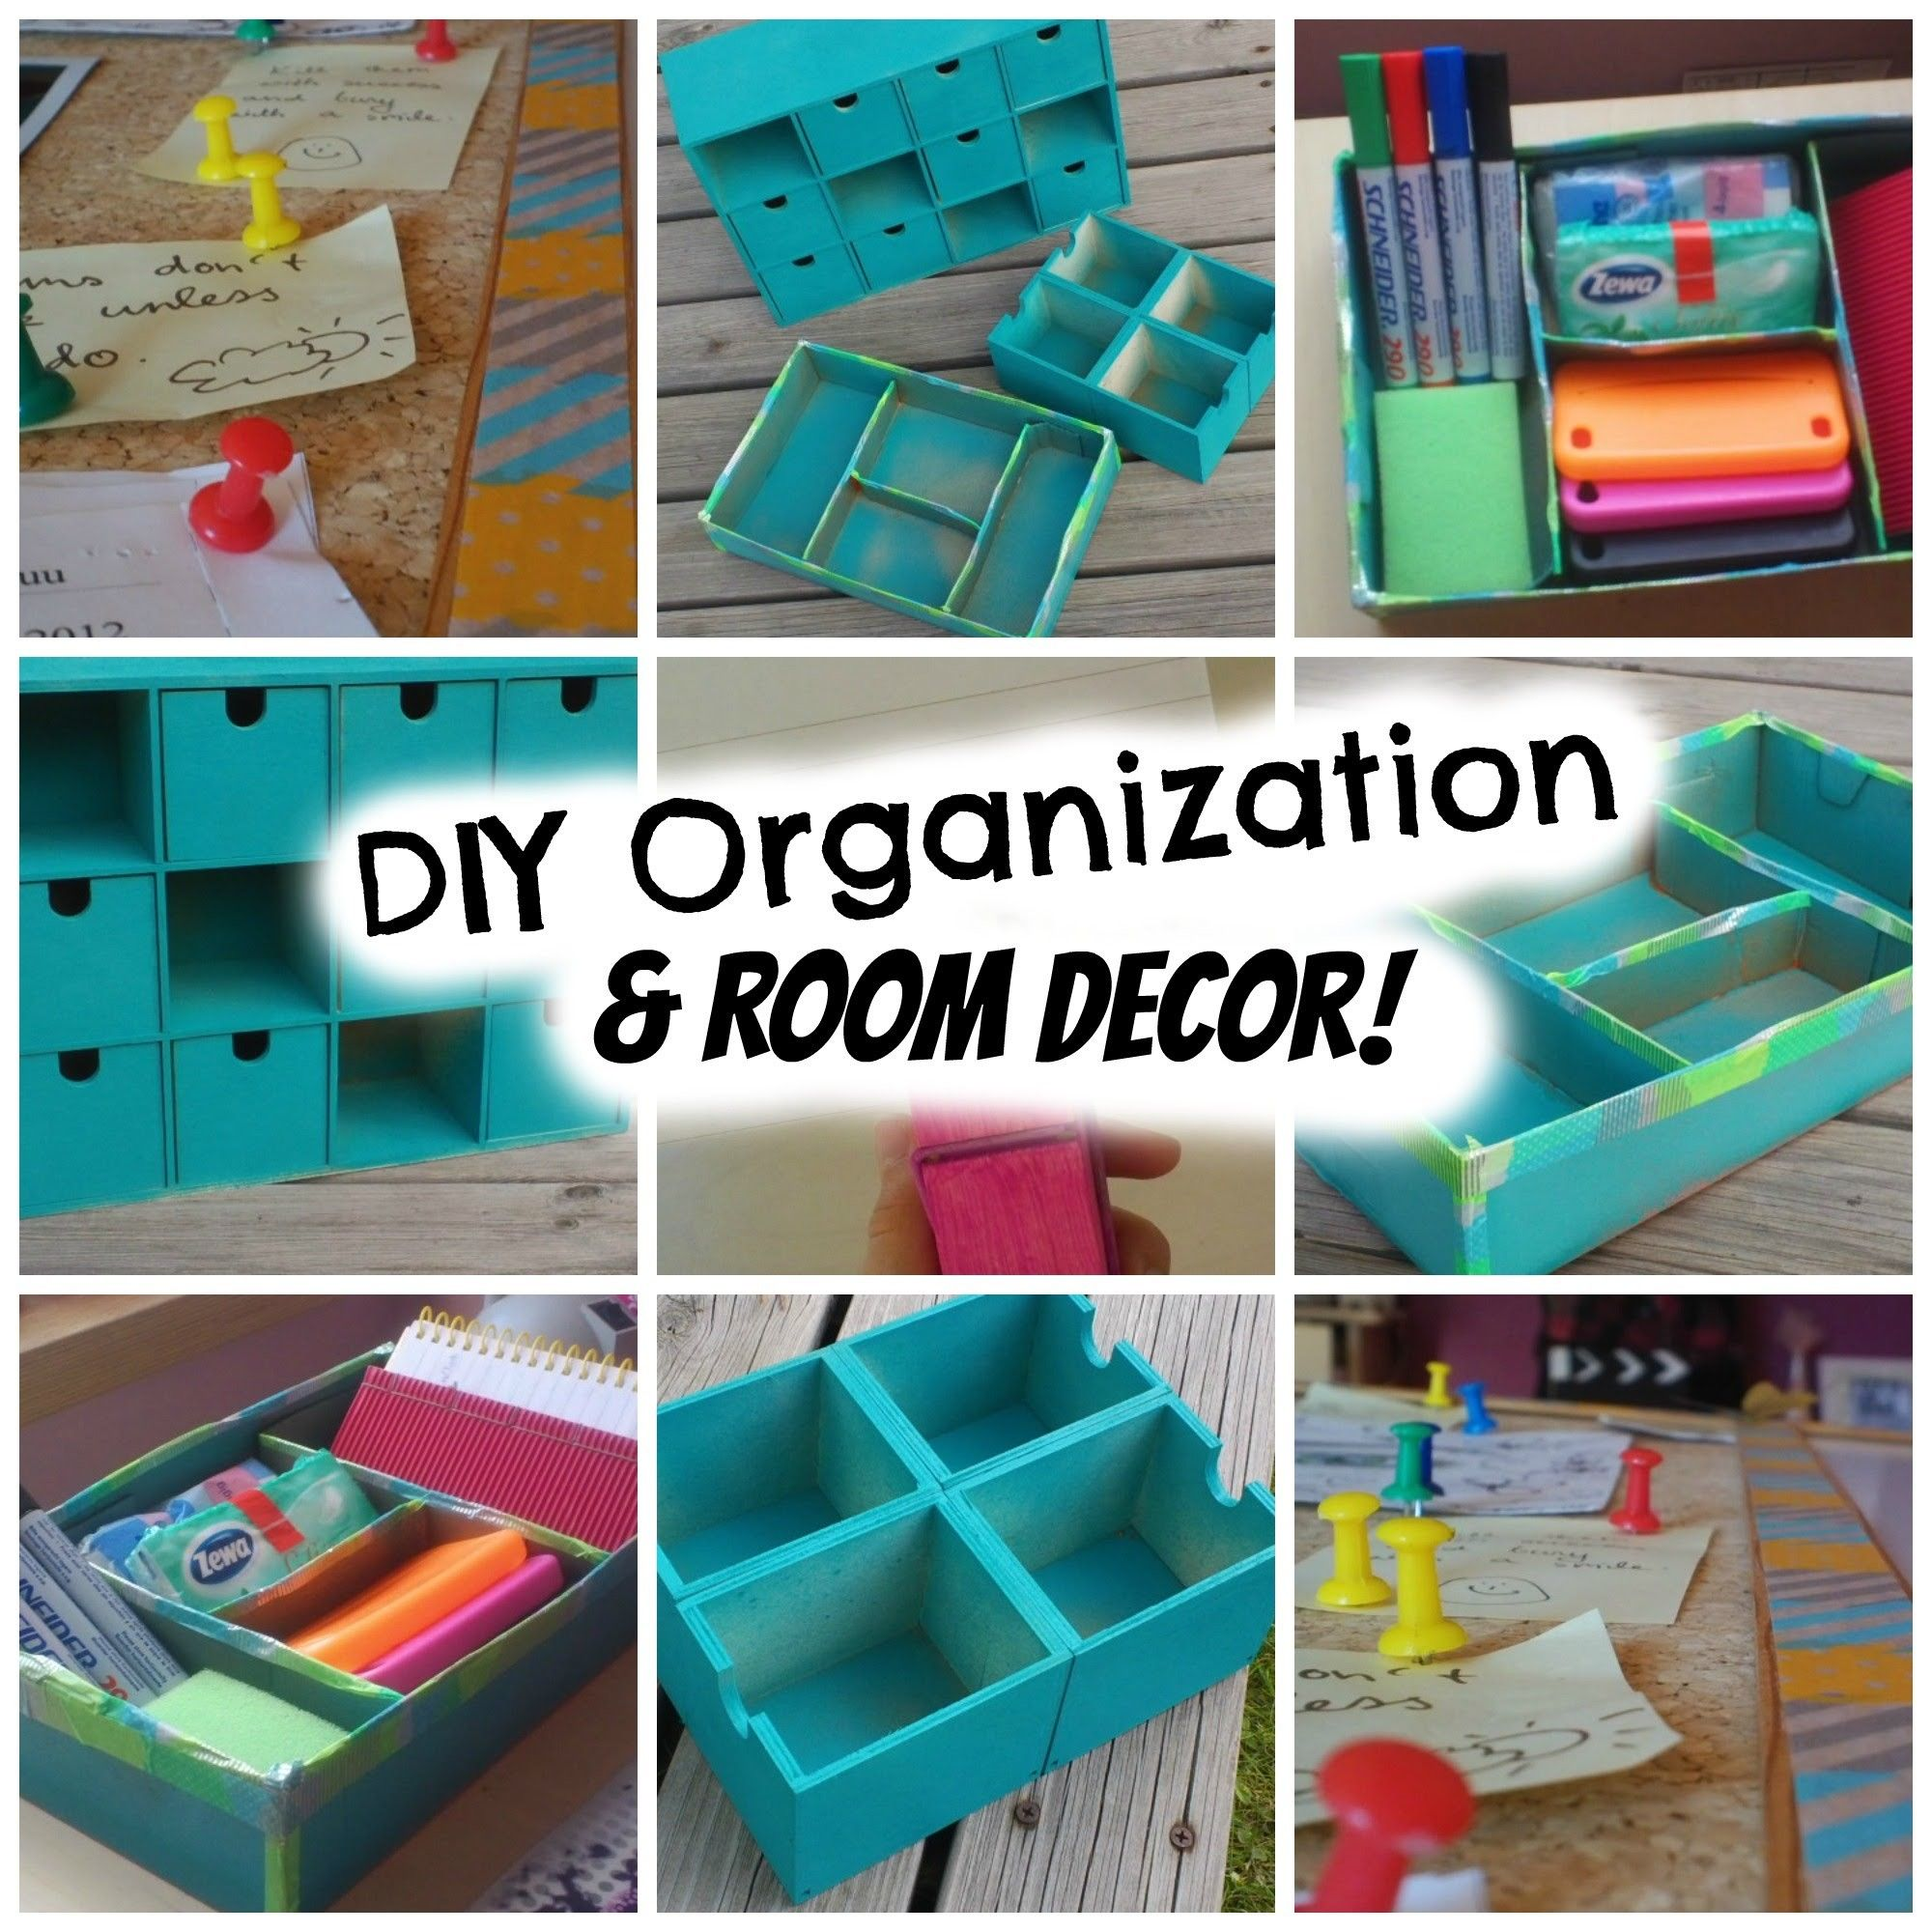 Diy Room Decor And Organization Ideas Back To School Diy Organization And Room Decor Super Cheap